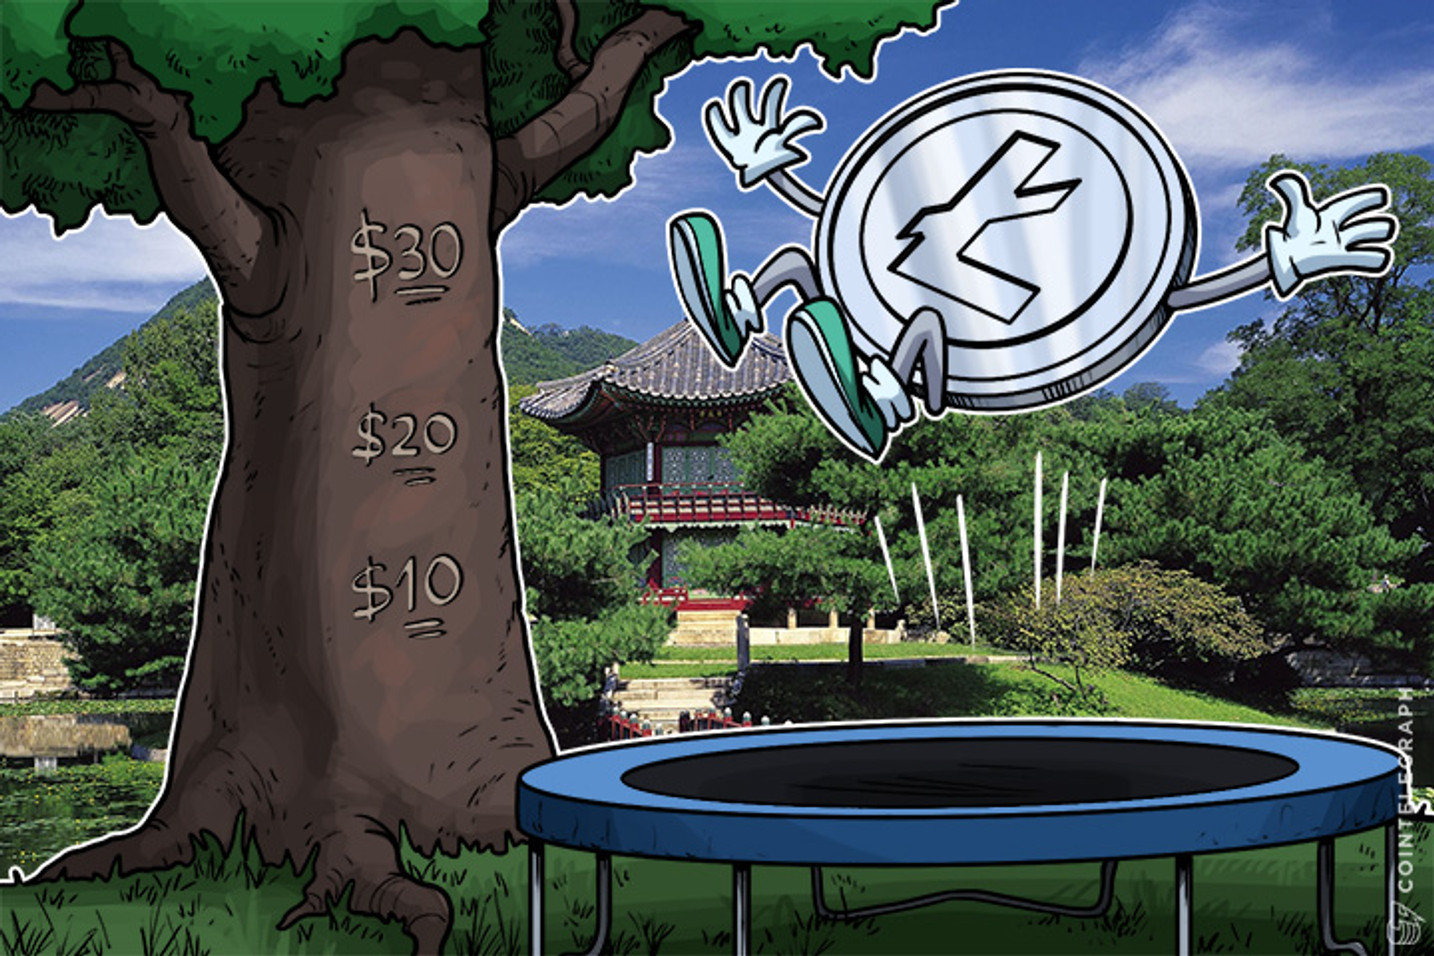 Litecoin Price Surges to $30 as South Korea's Largest Exchange Adds Support